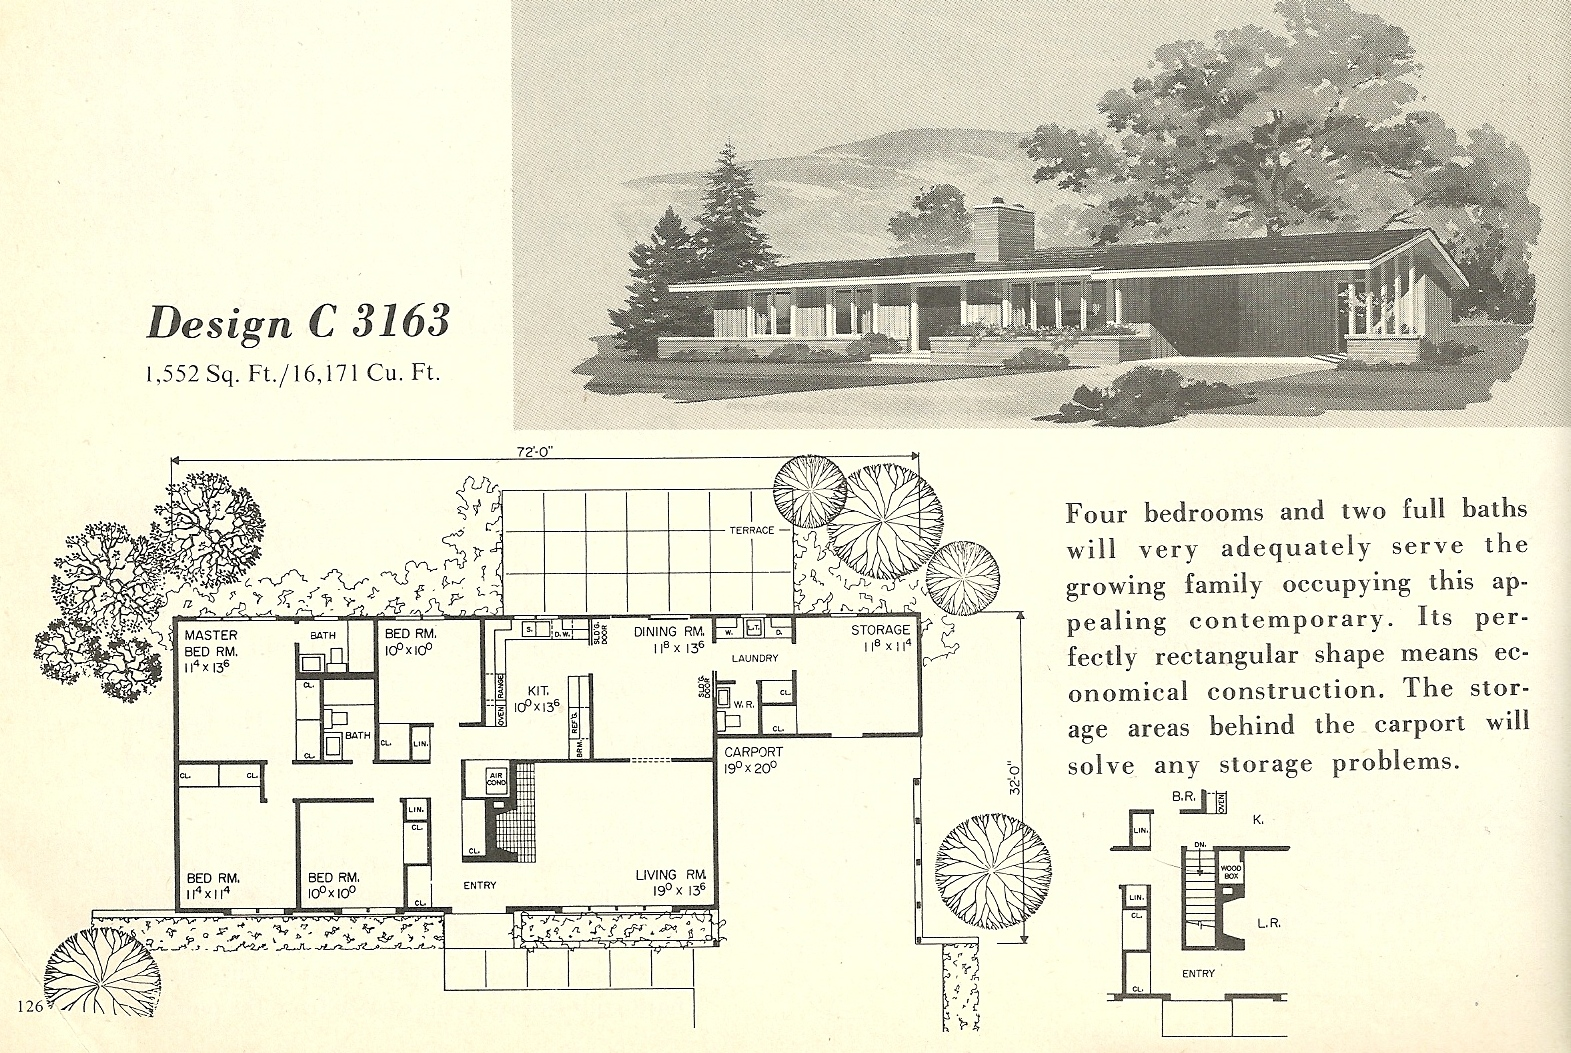 Vintage house plans 3163 antique alter ego for Vintage home plans